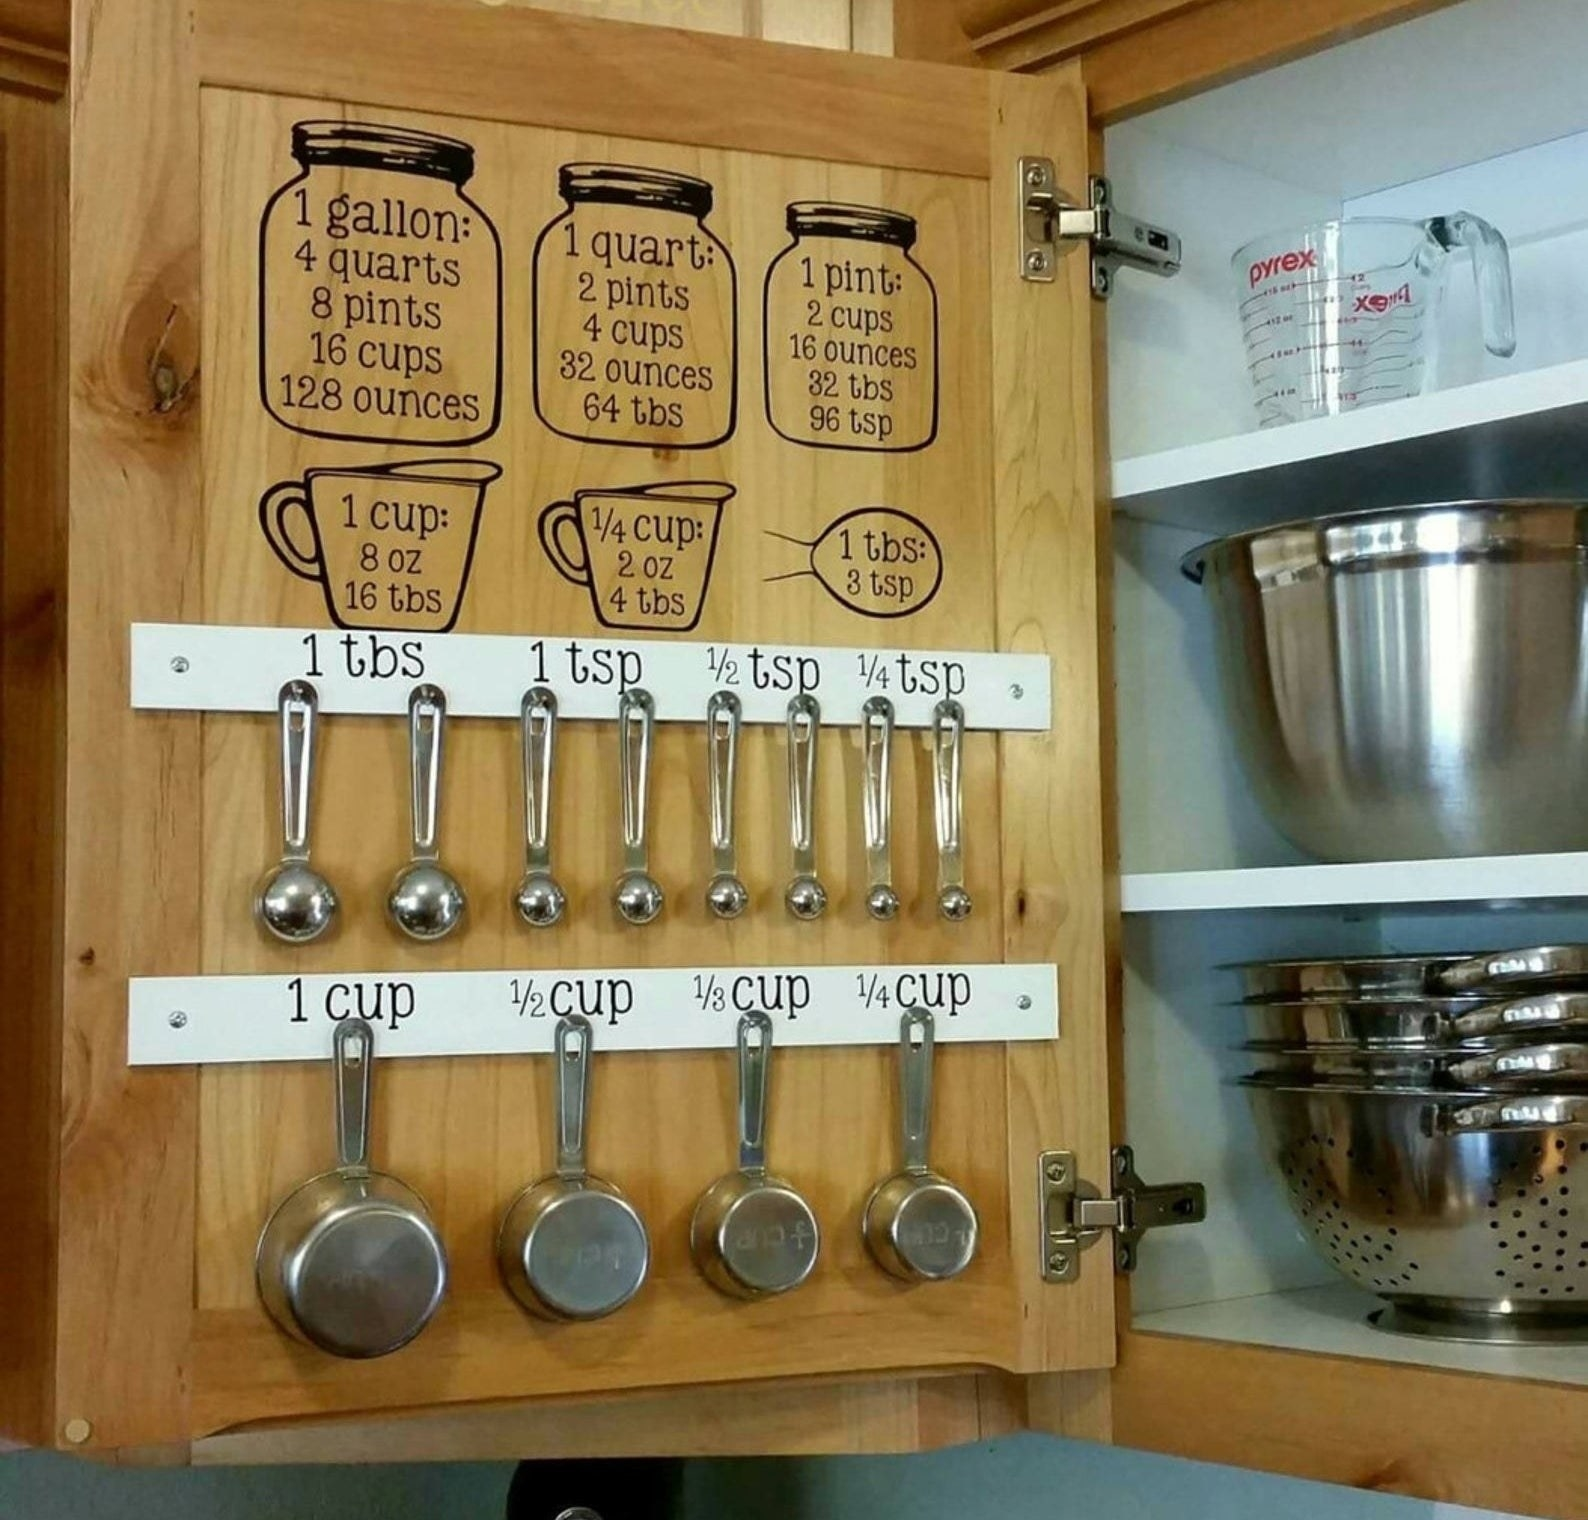 the decals hanging inside of a kitchen cabinet